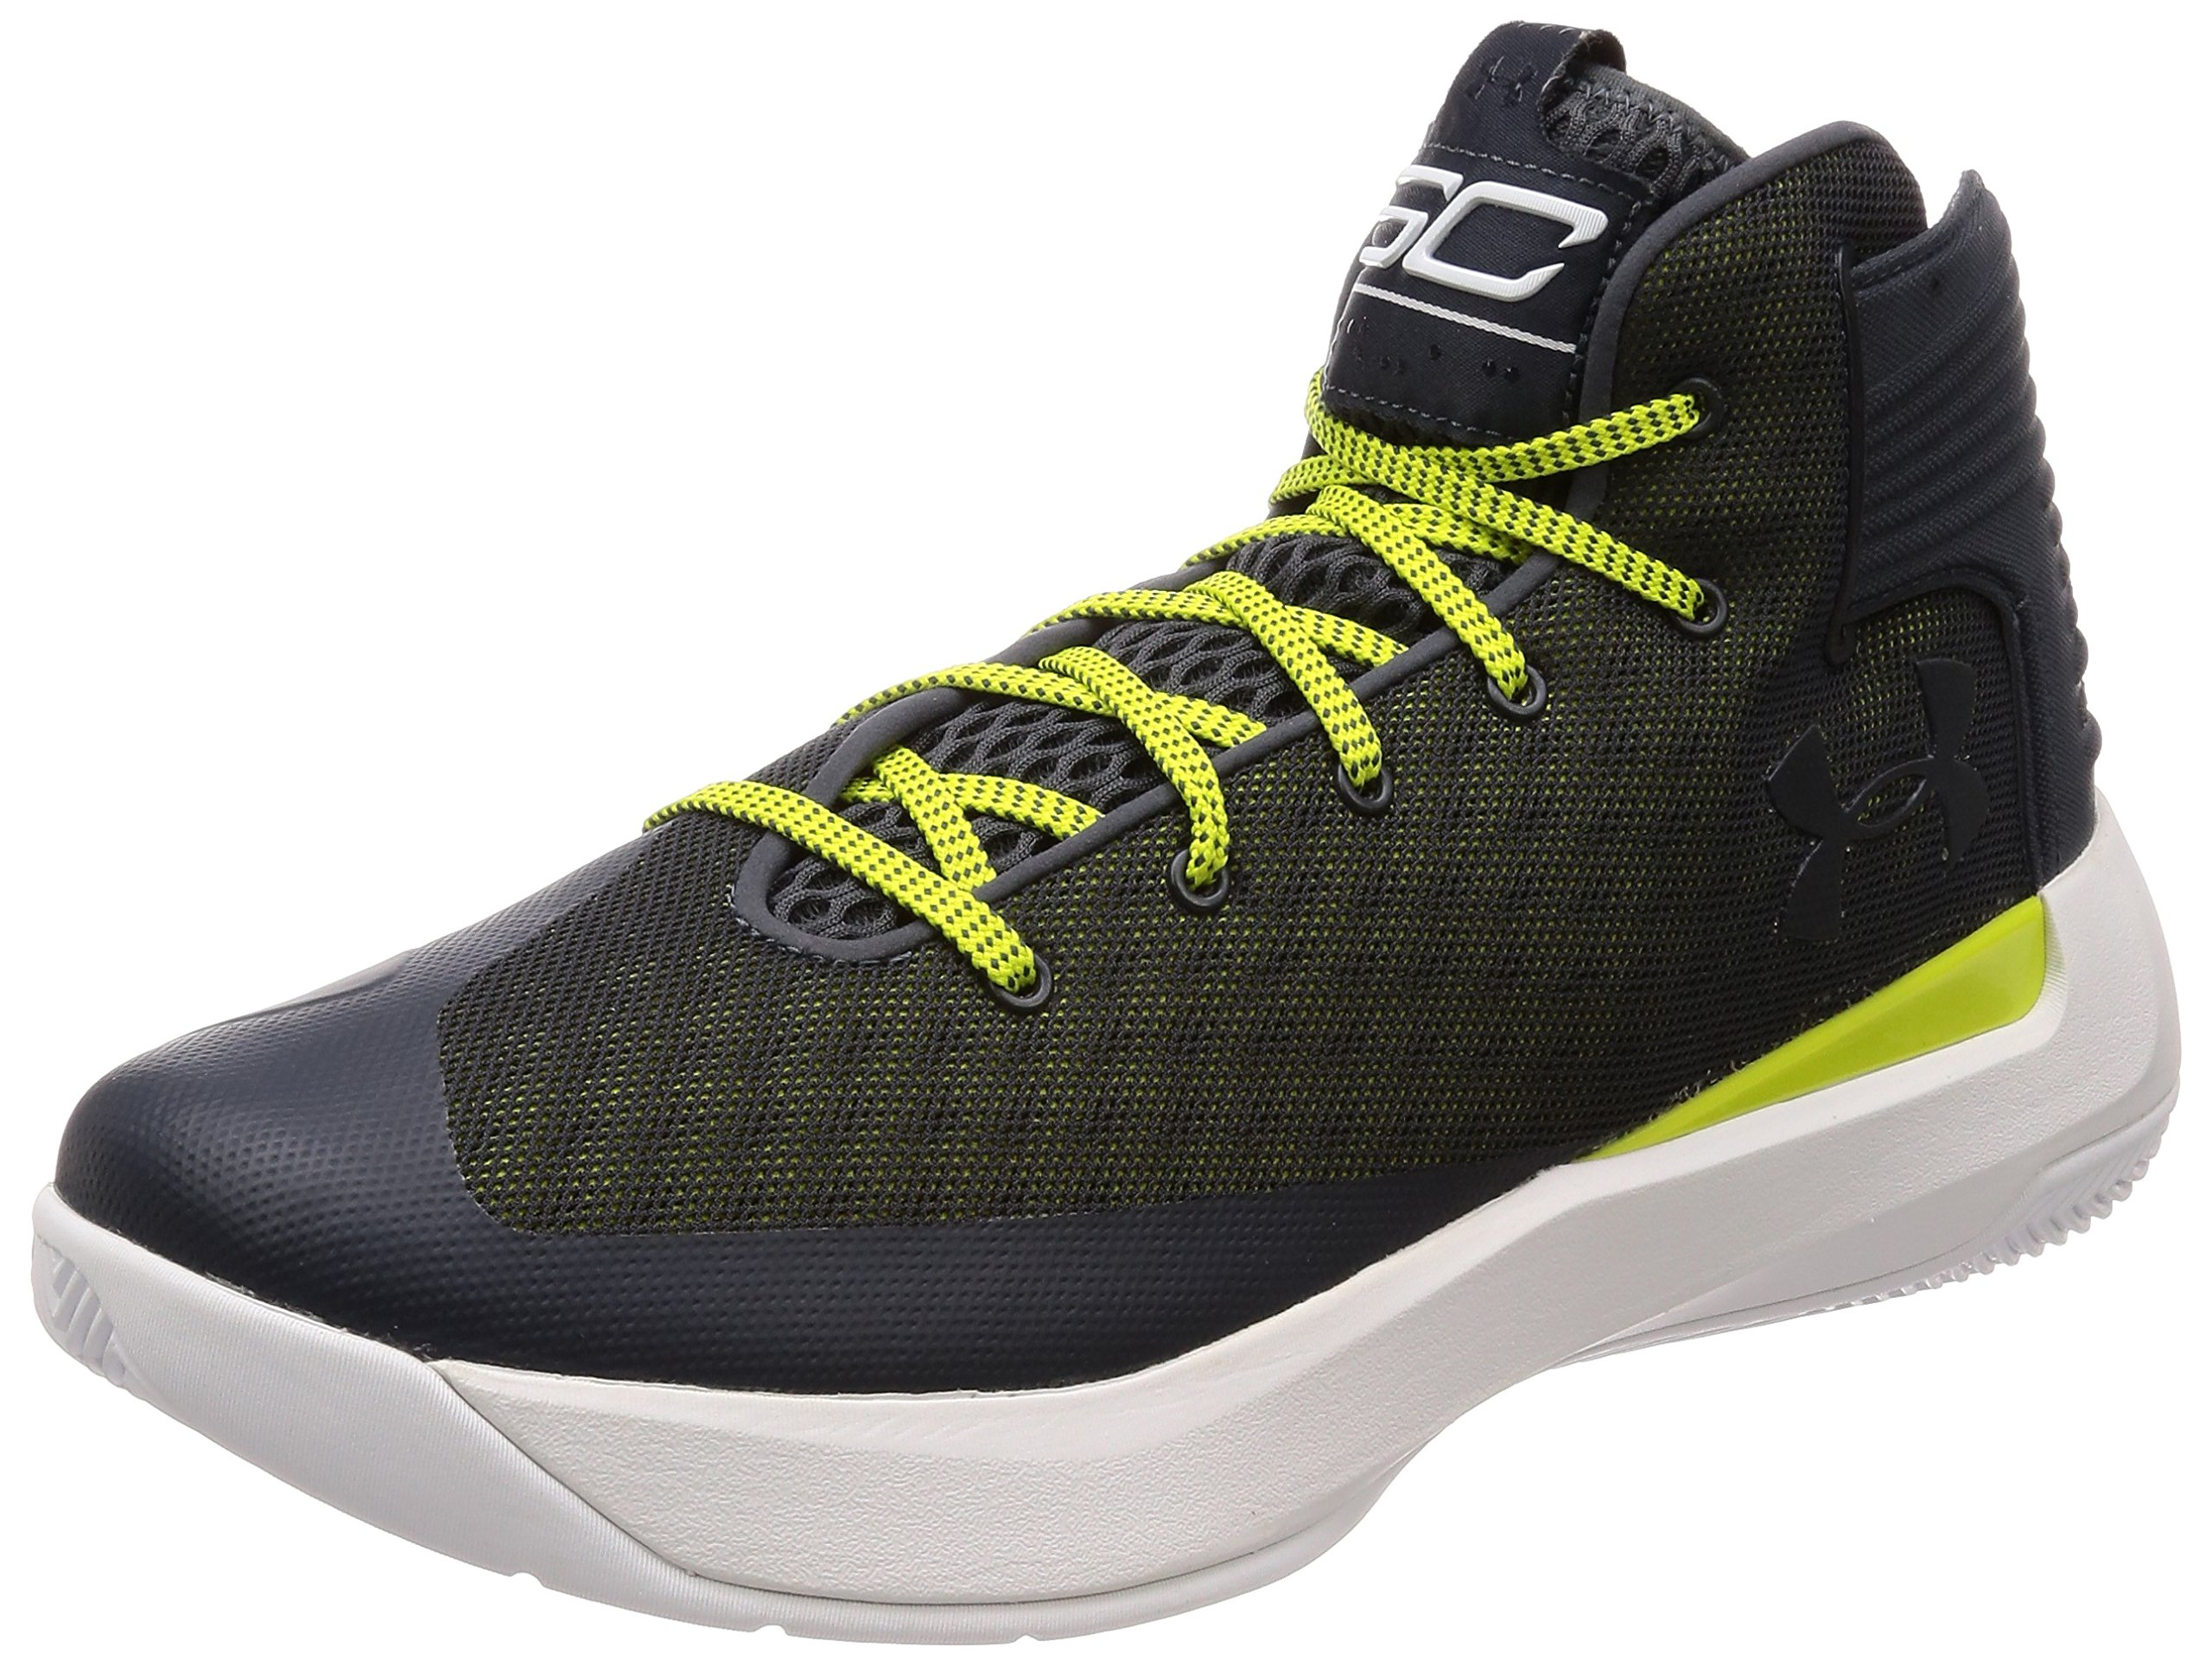 8031b2b90c0f Galleon - Under Armour Men s Curry 3 Basketball Shoes (11.5 M US ...